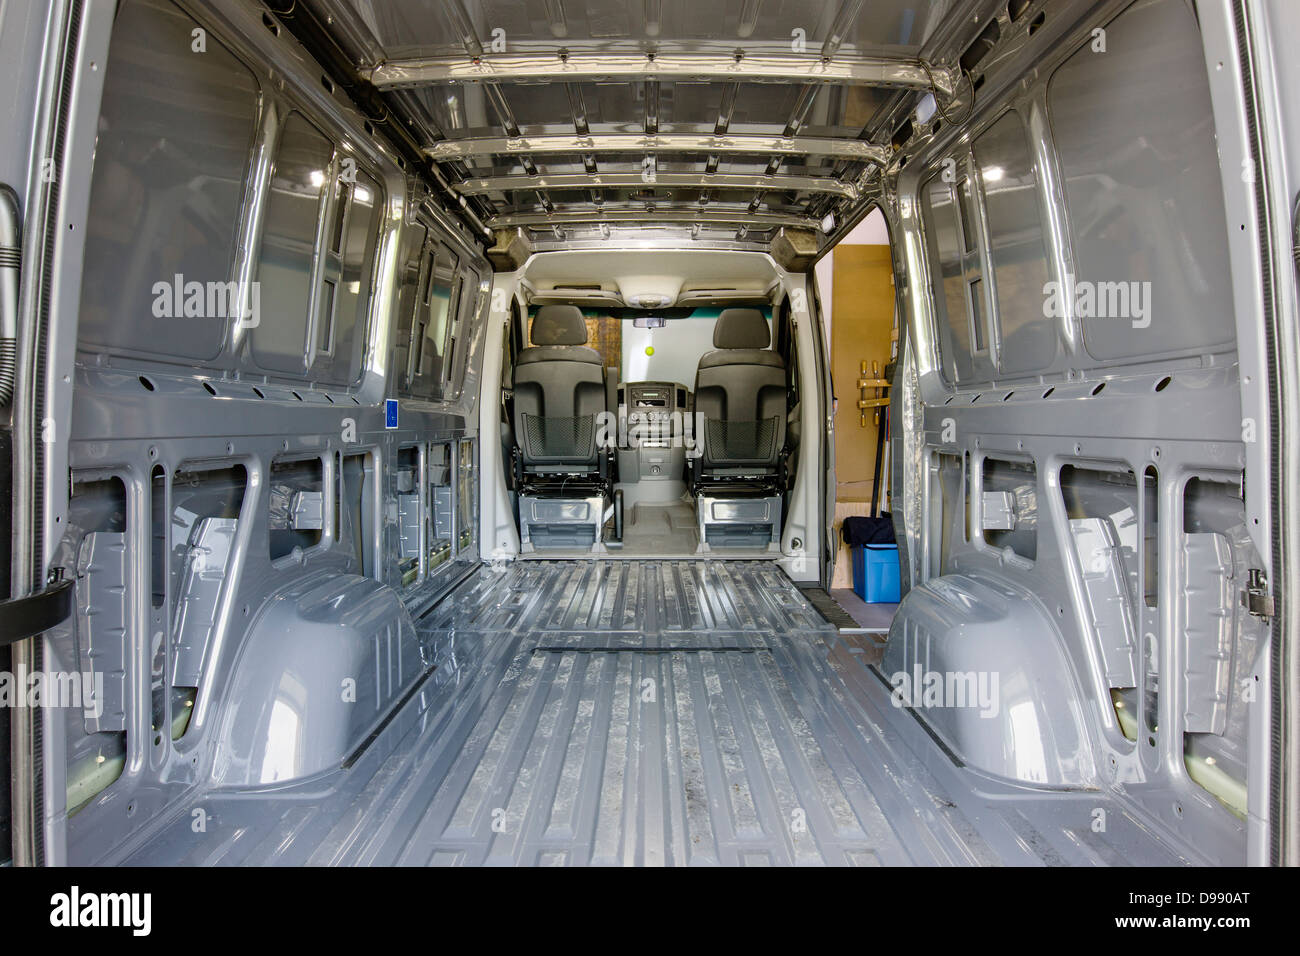 Interior View Of Mercedes Benz Sprinter Cargo Van 2500 Being Stock Photo Royalty Free Image